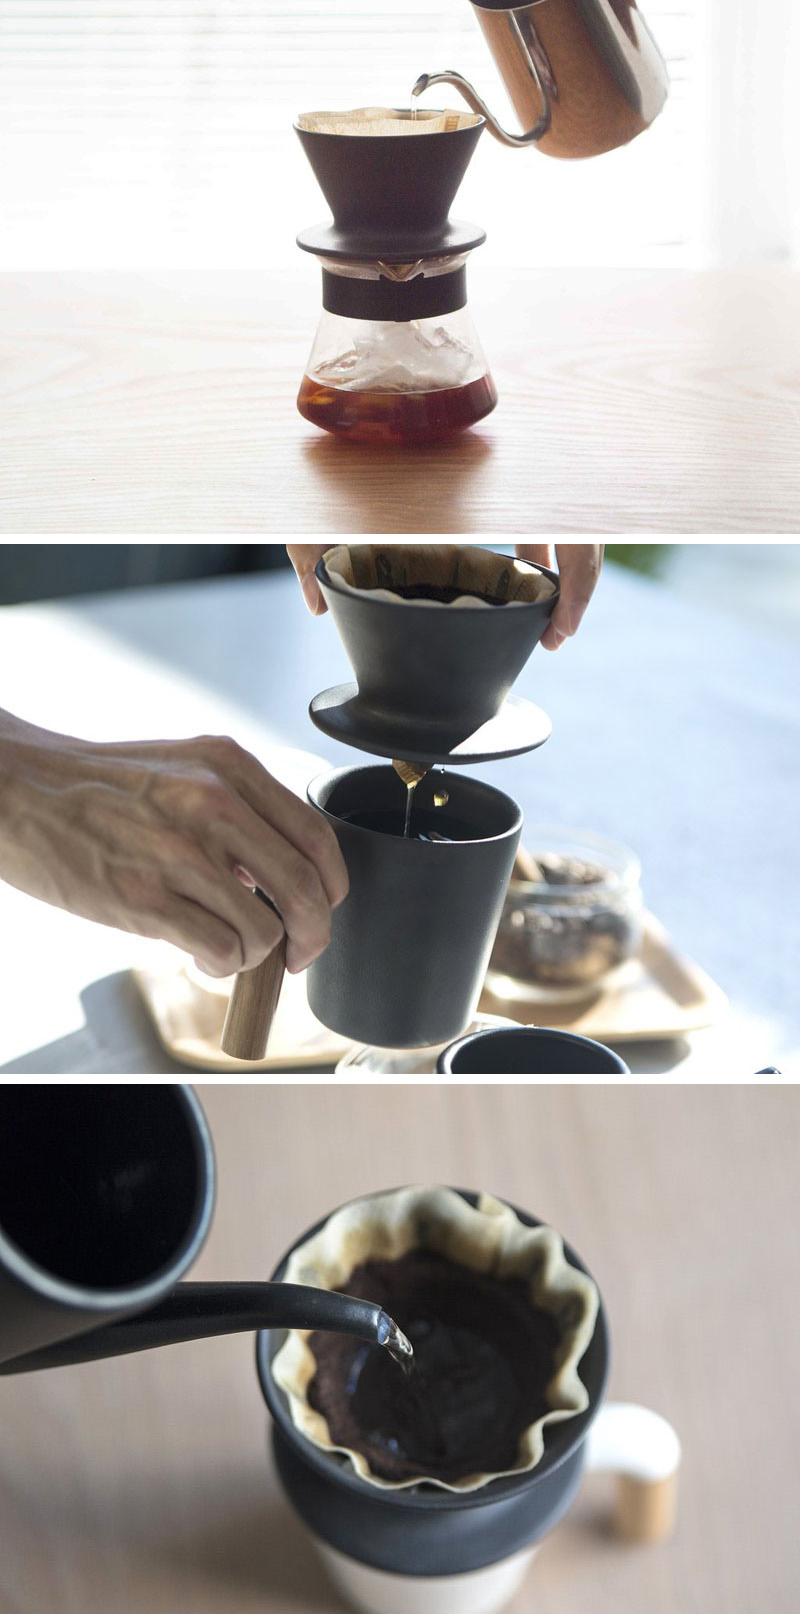 A quick brew is easily and beautifully achieved with this modern coffee pour over made from matte black Japanese ceramic.